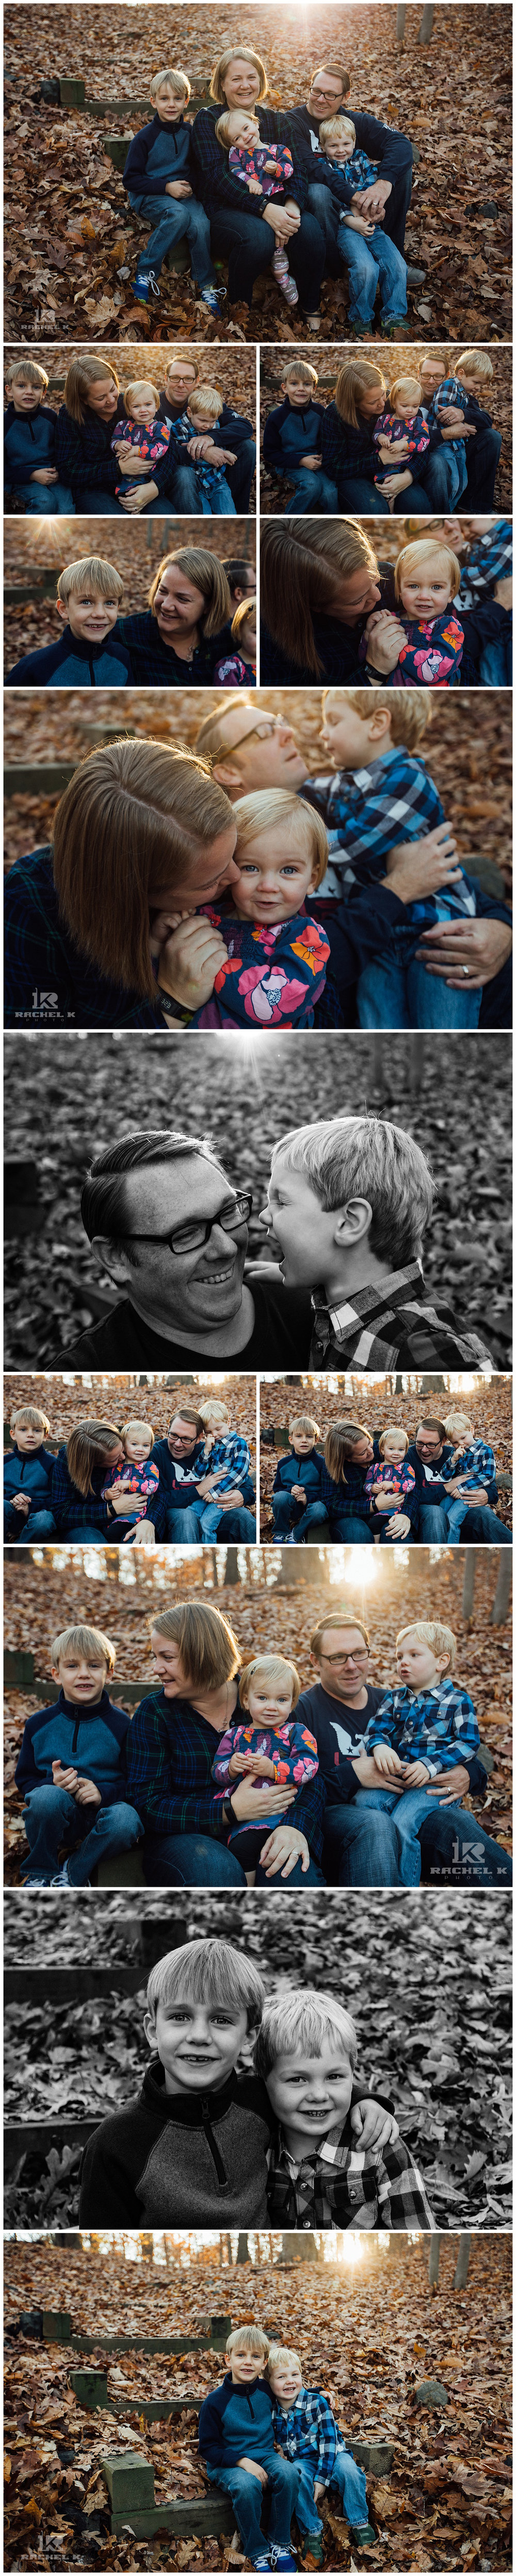 Fairfax Virginia winter family session with three kids by Rachel K Photo